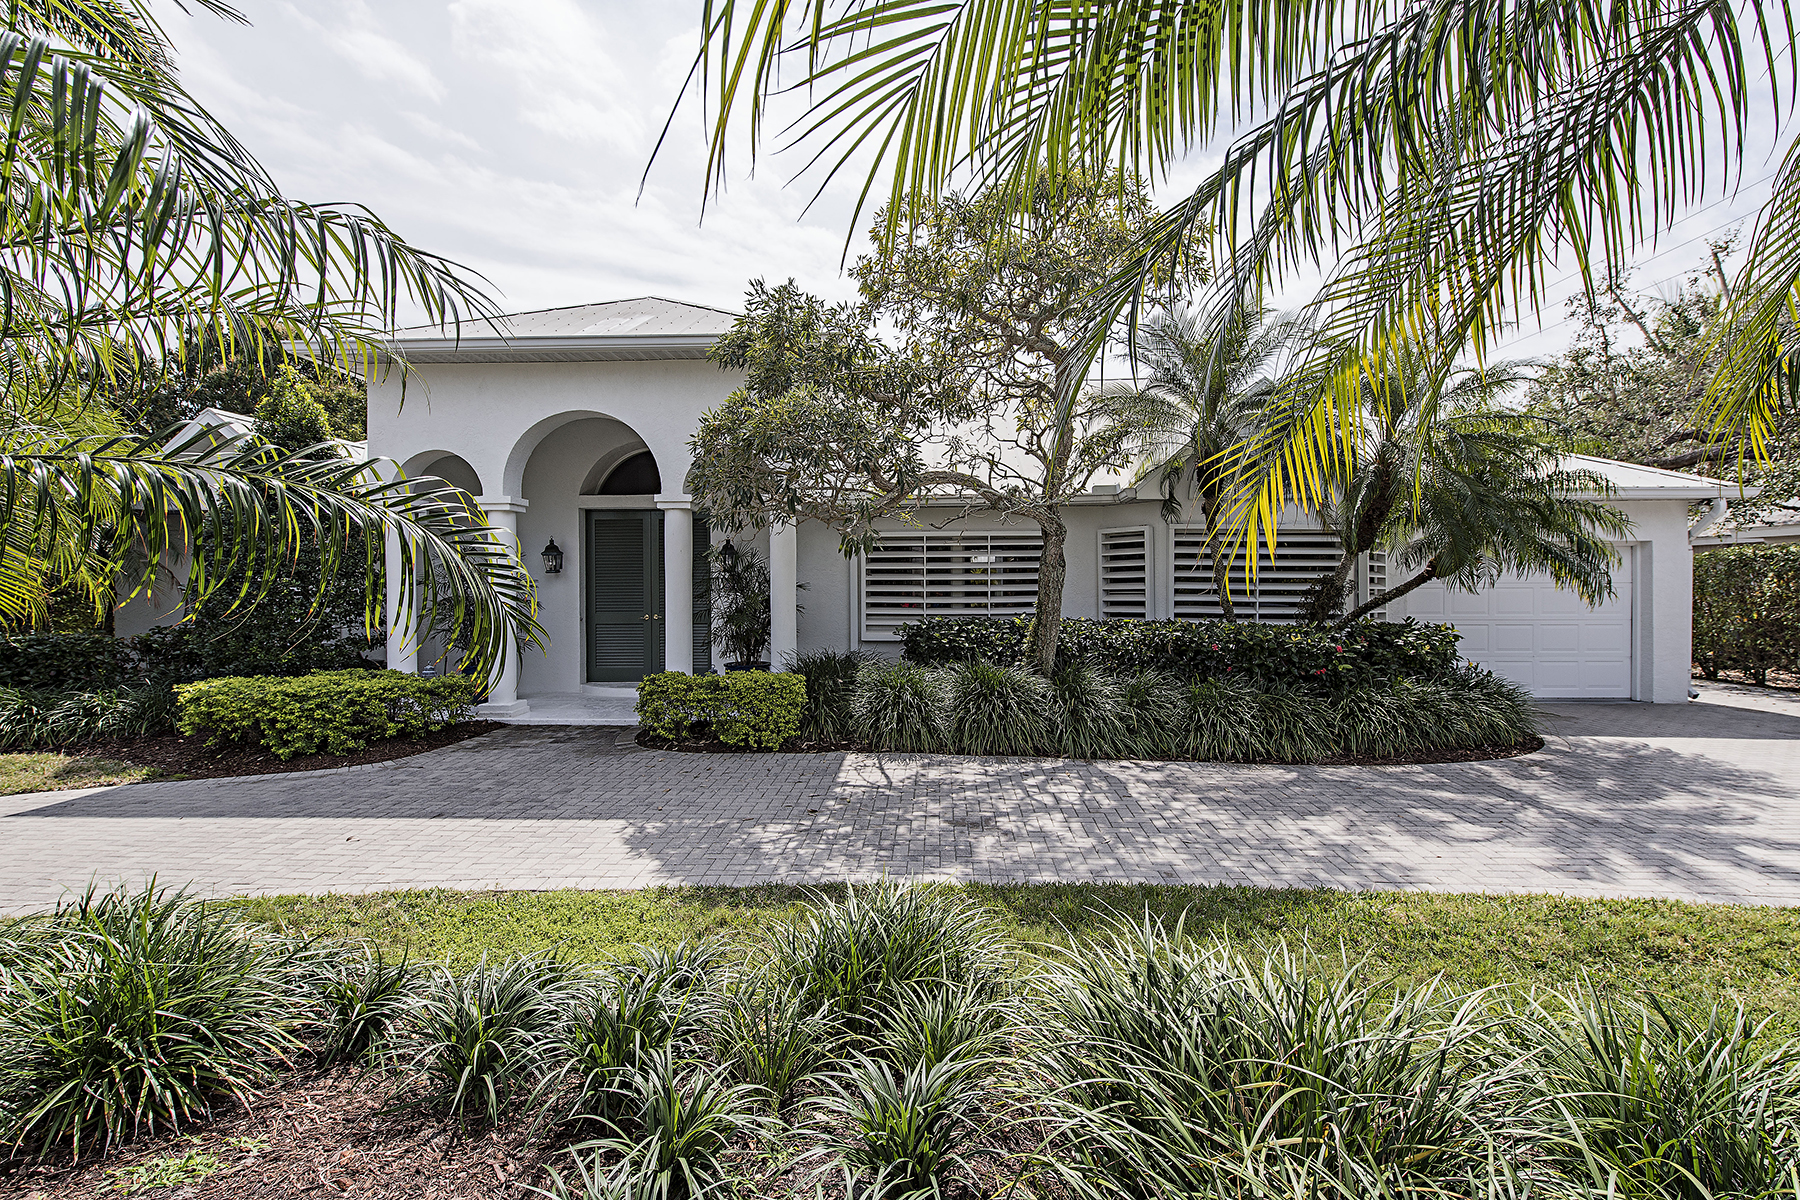 Single Family Home for Sale at OLDE NAPLES - GOLF DRIVE ESTATES 506 S Golf Dr Naples, Florida, 34102 United States